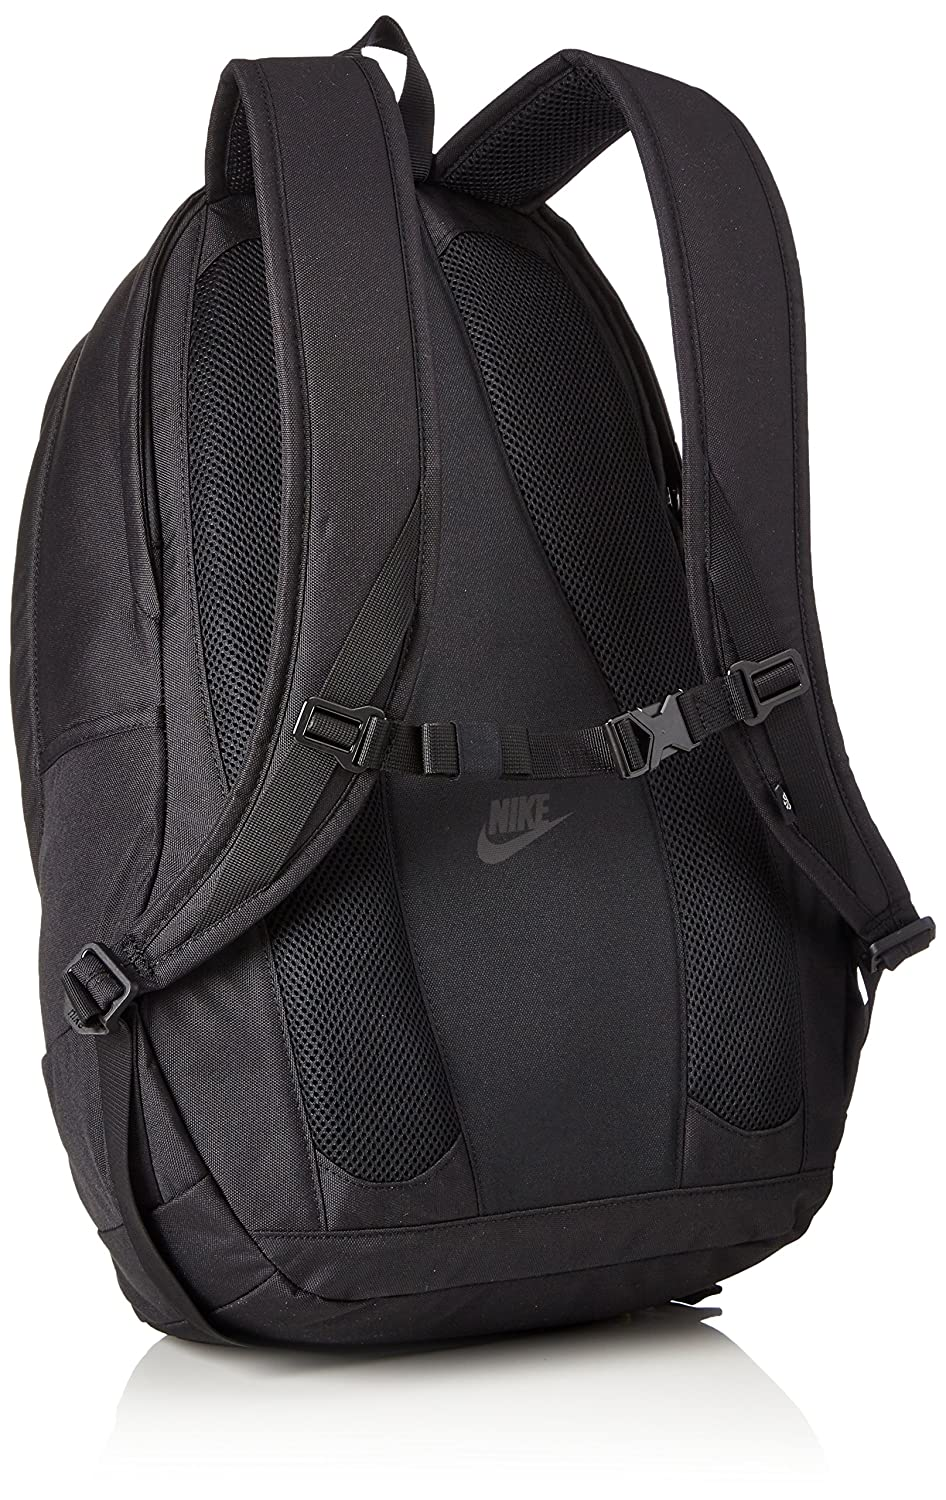 ea39ac62e35e2 Nike Cheyenne 3.0 Solid Backpack for Men, One Size, Men, Cheyenne 3.0  Solid: Amazon.co.uk: Sports & Outdoors